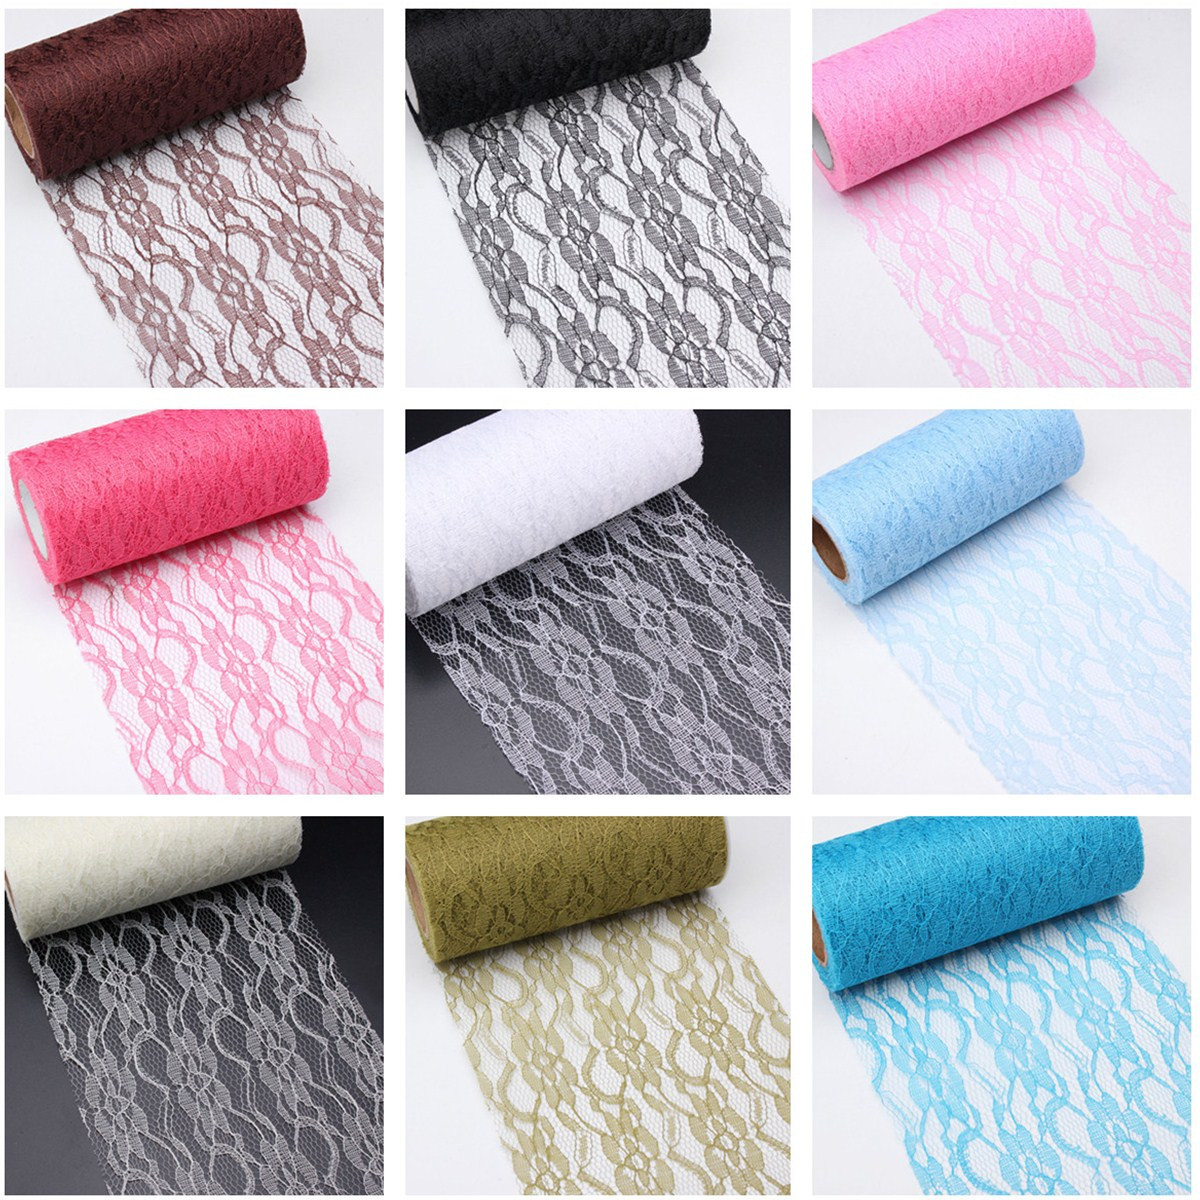 10 Yards Vintage Lace Roll Fabric Tulle Table Runner Chair Sash Wedding Party Decoration